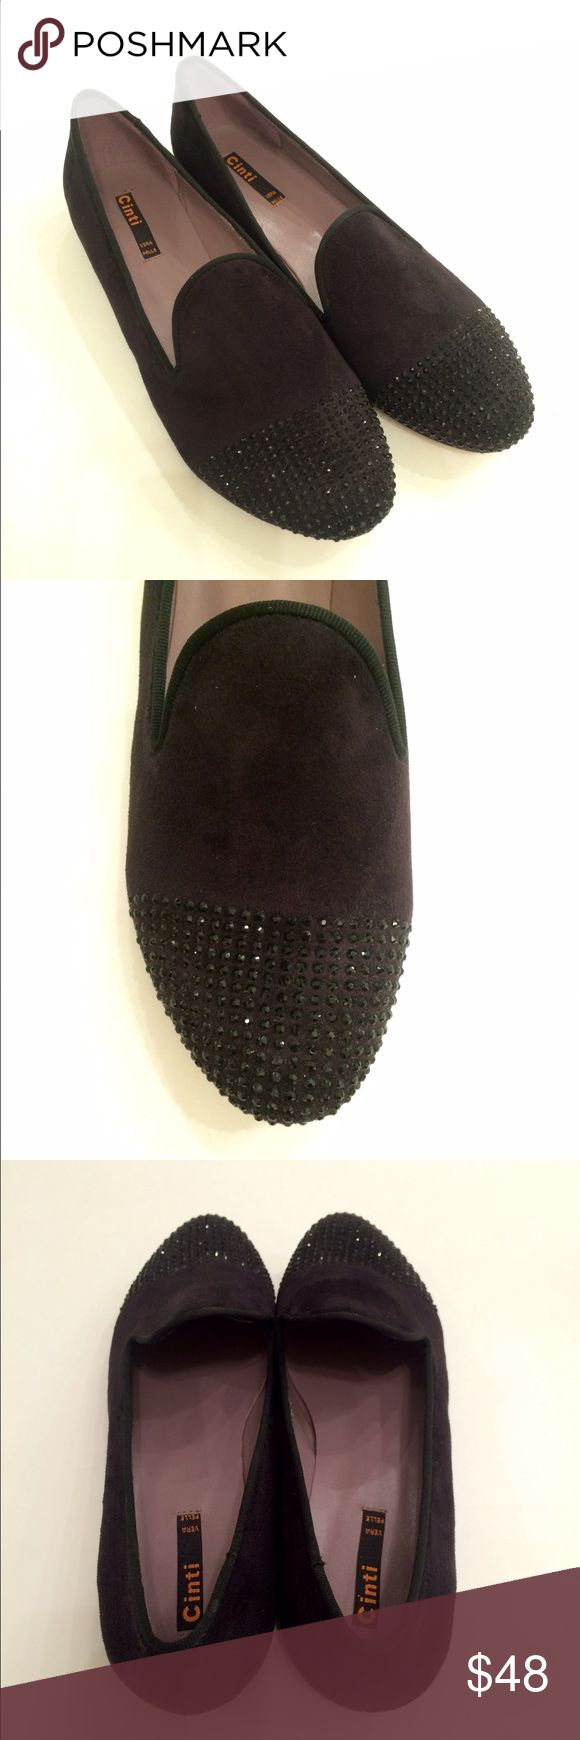 """New! Cinti Italian Loafers New! Cinti Italian Loafers...gorgeous black suede flats (heel 0.75"""")...round toe...non-slip sole...slightly iridescent black rhinestones at toe...imported...original box not included. Euro size 40 = US 9.5. Retail $129 Cinti Shoes Flats & Loafers"""